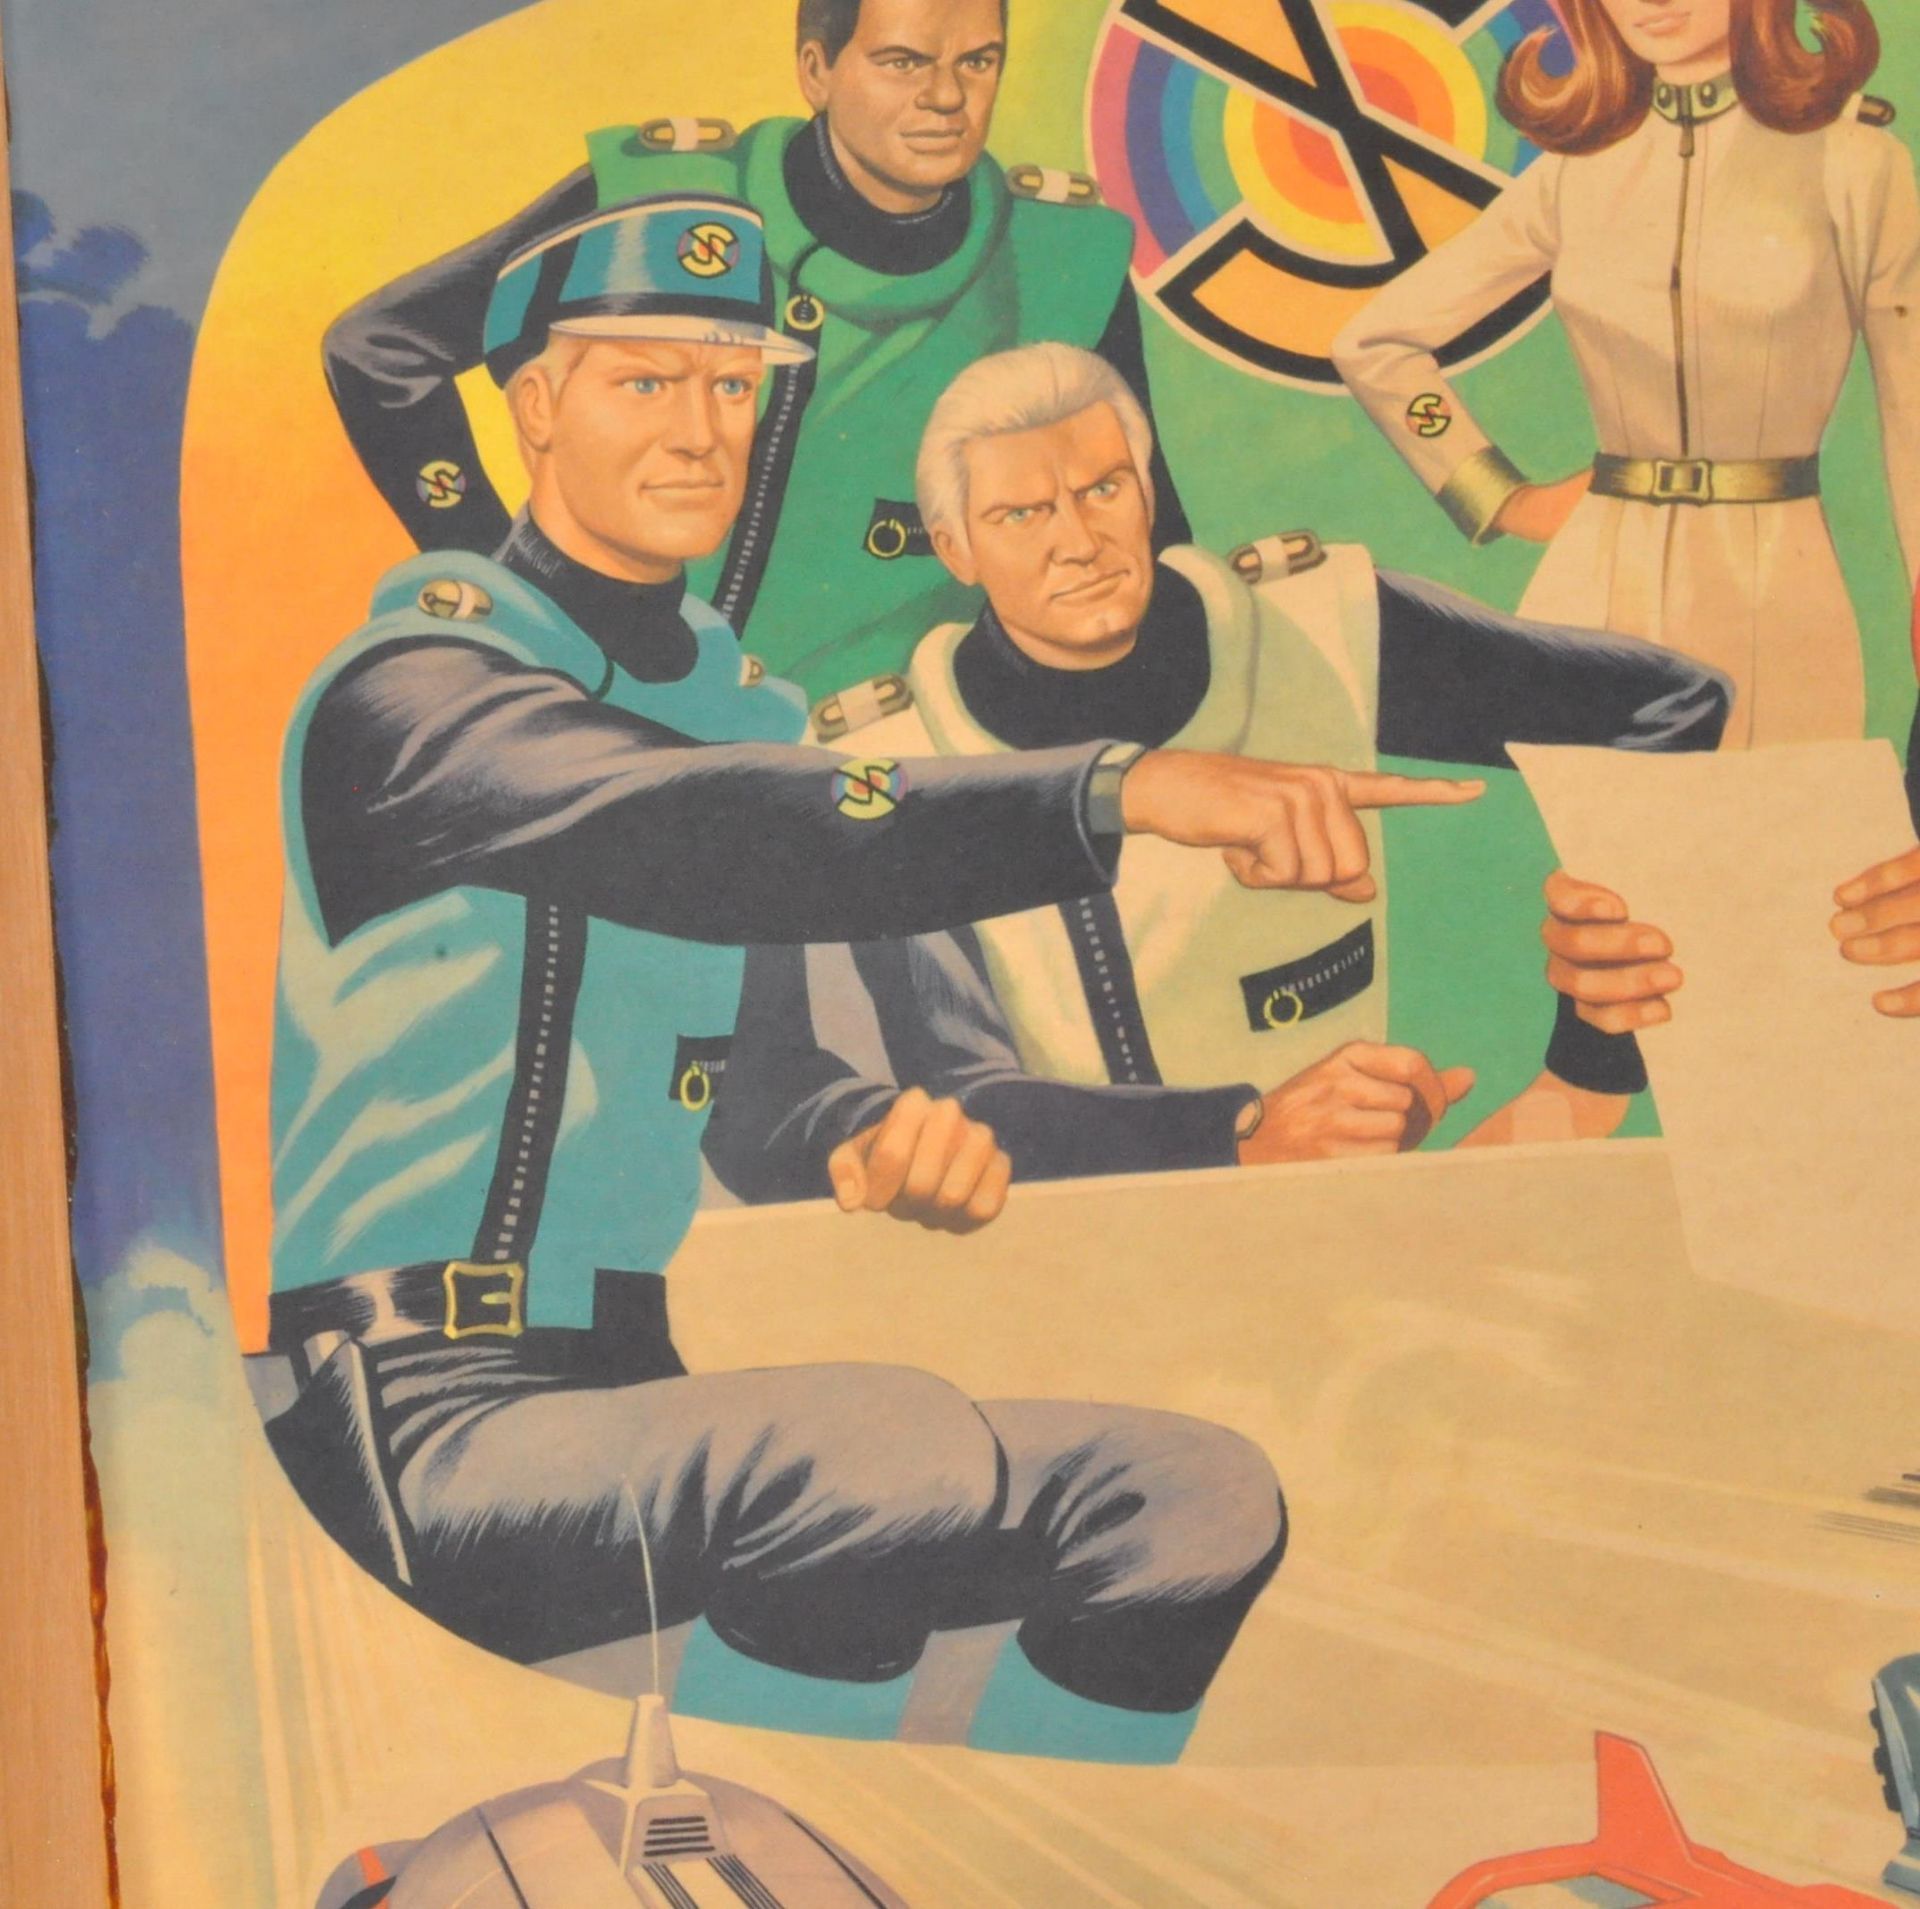 RARE CAPTAIN SCARLET ANGLO CONFECTIONERY SHOP DISPLAY POSTER BOARD - Image 4 of 9